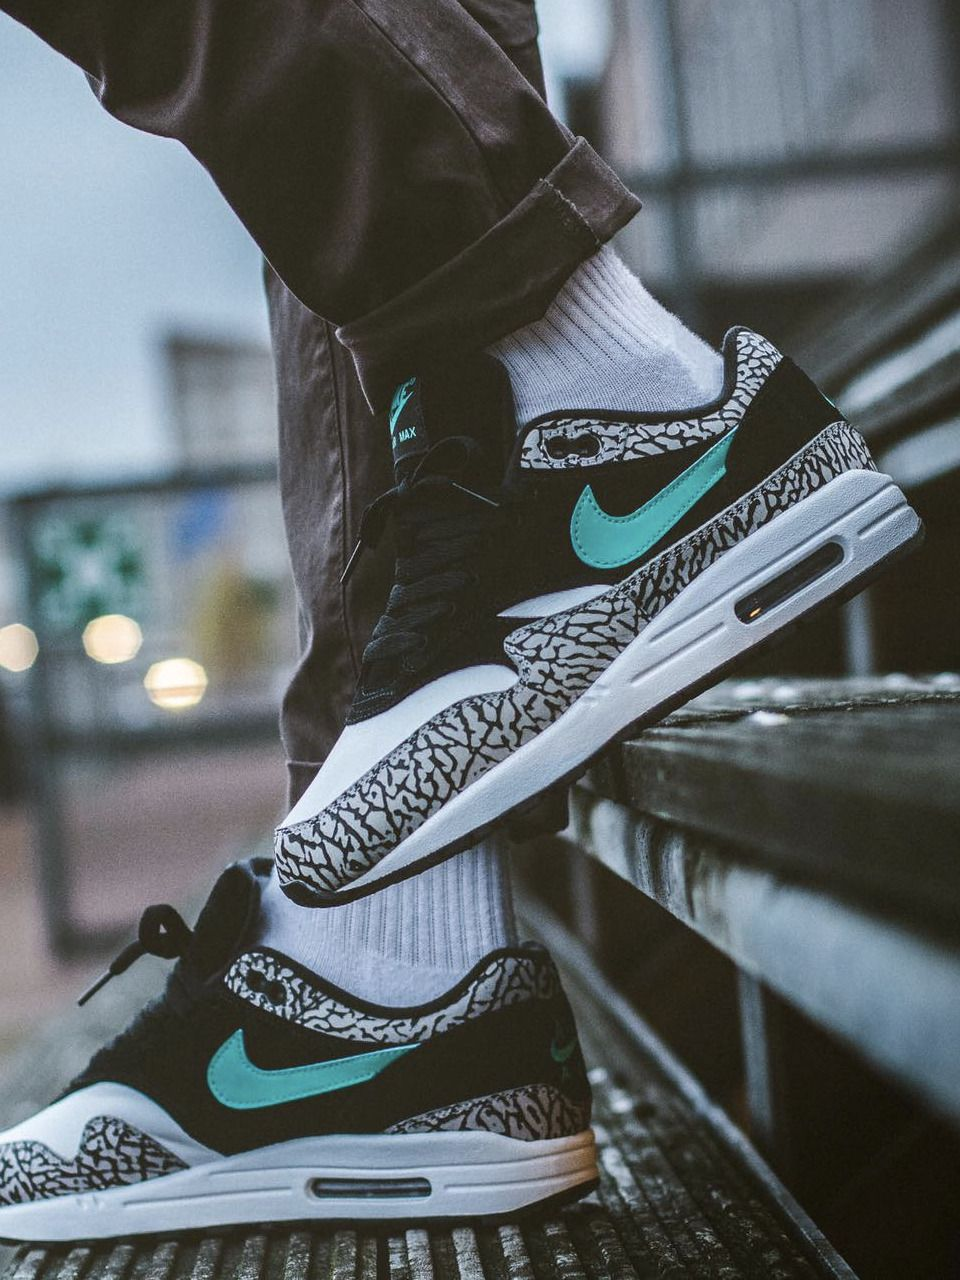 d3674e212d5 Atmos x Nike Air Max 1 'Elephant' (by maikelboeve) Shoe trees are no ...